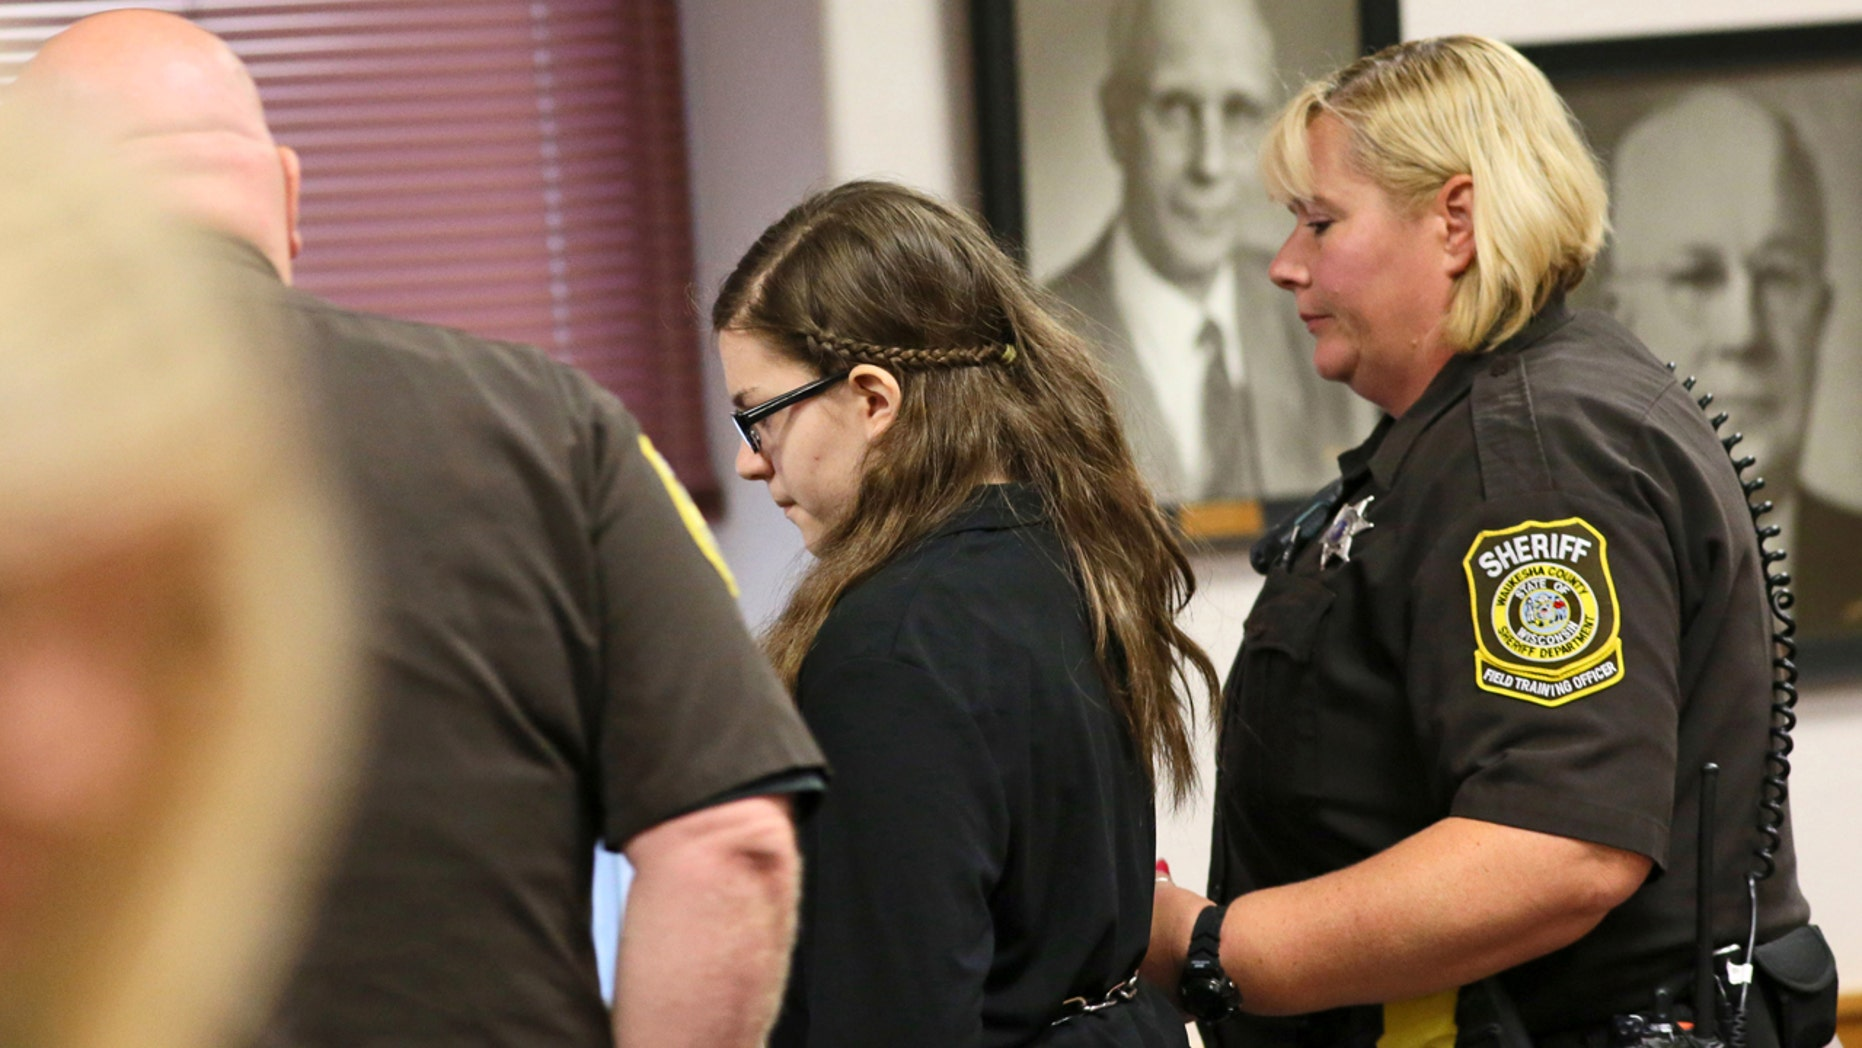 Sept. 9, 2016: Anissa Weier, accused of trying to kill a classmate to please horror character Slender Man, is led out of Waukesha County Circuit Court in Waukesha, Wis.